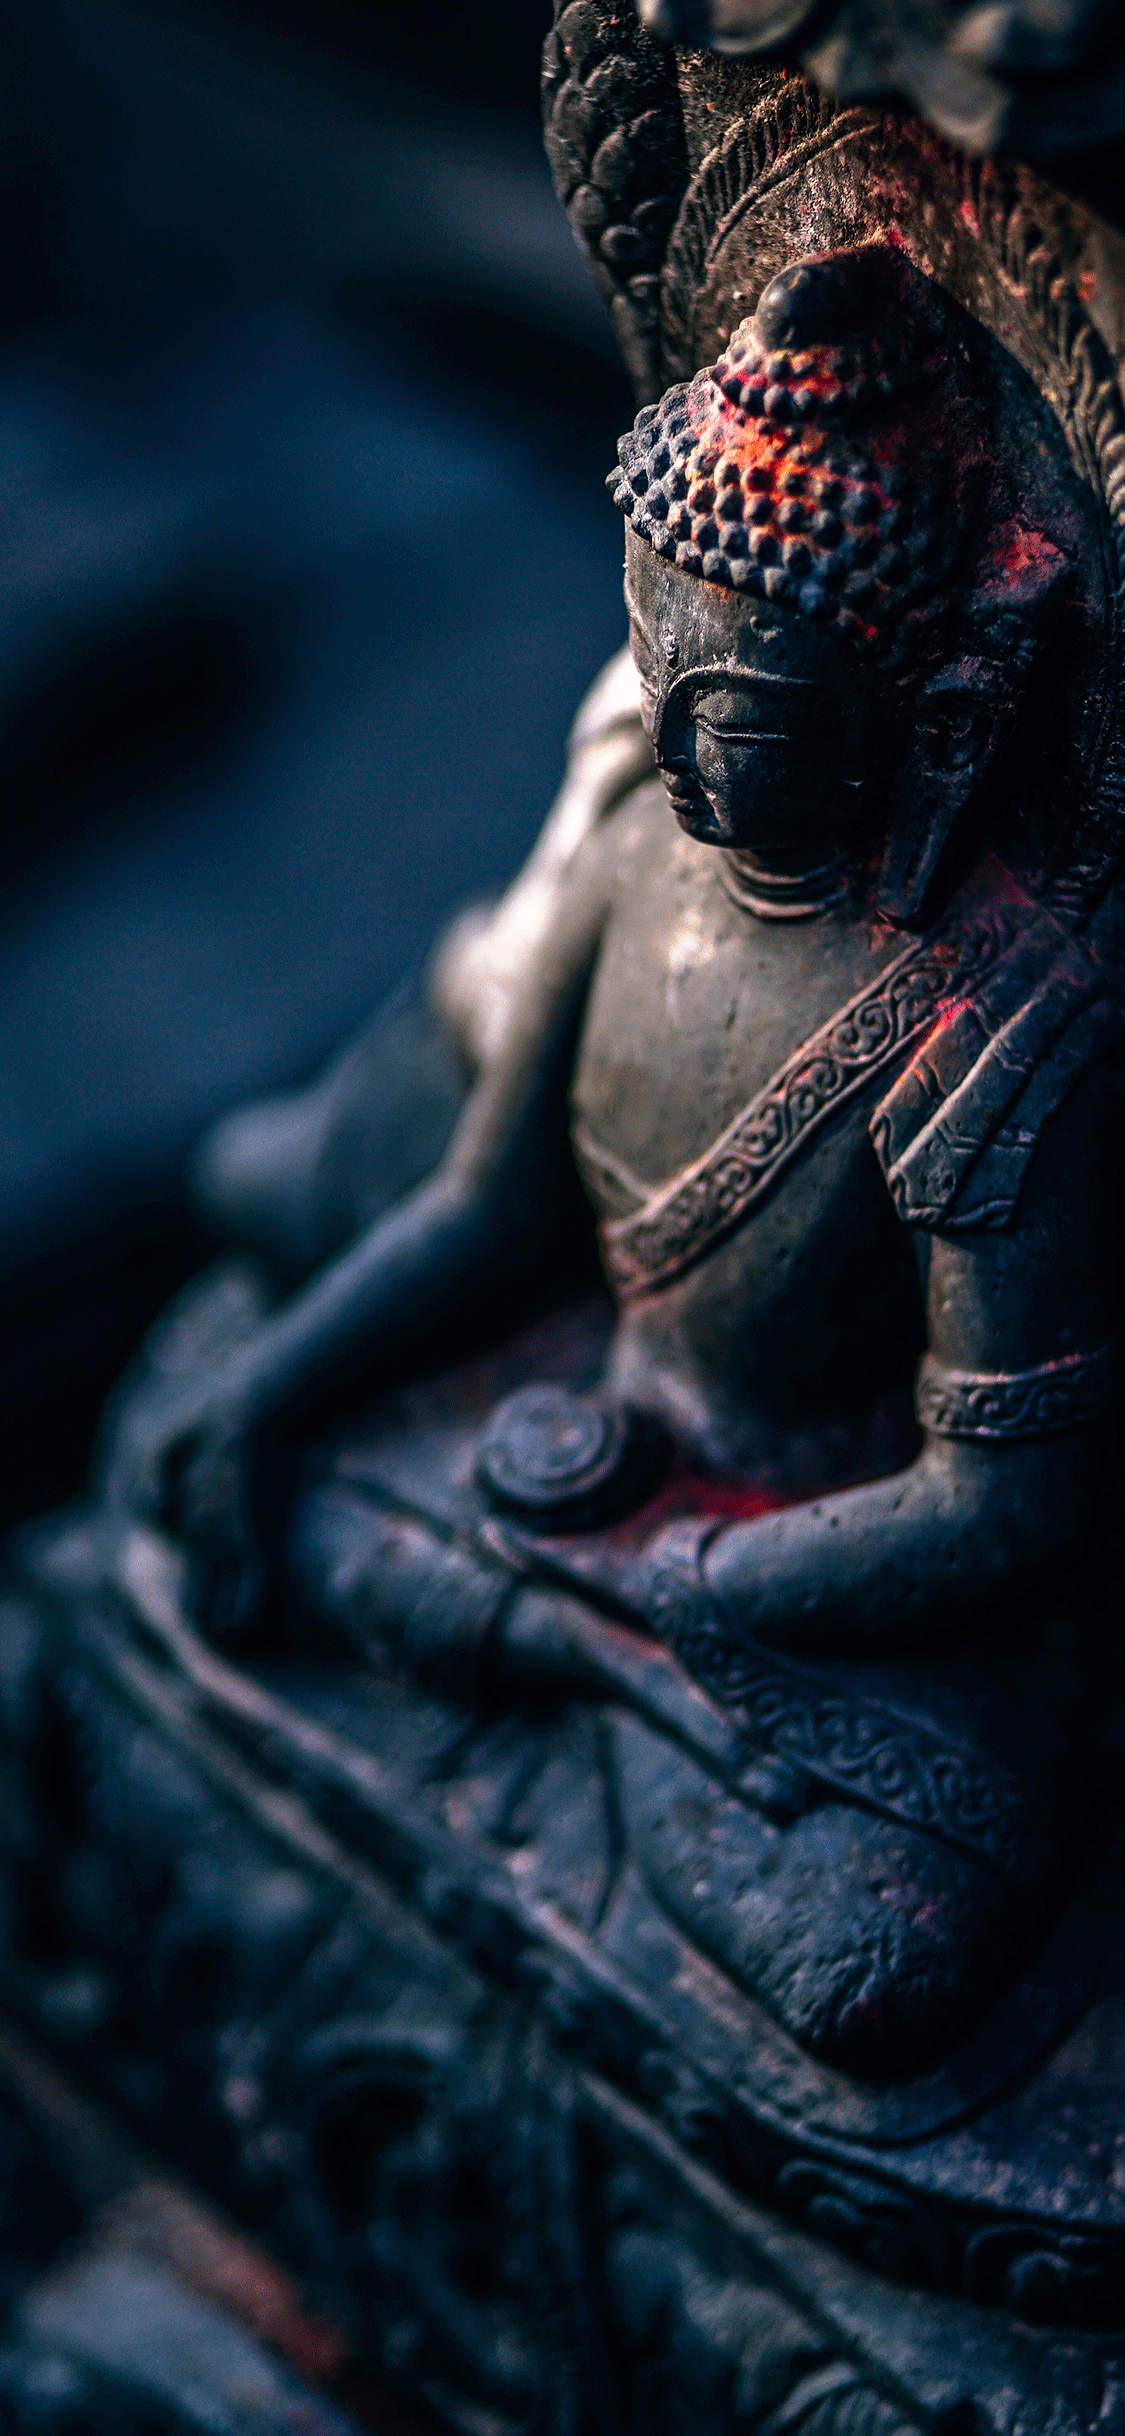 iPhone wallpaper budha nepal Fonds d'écran iPhone du 09/08/2018